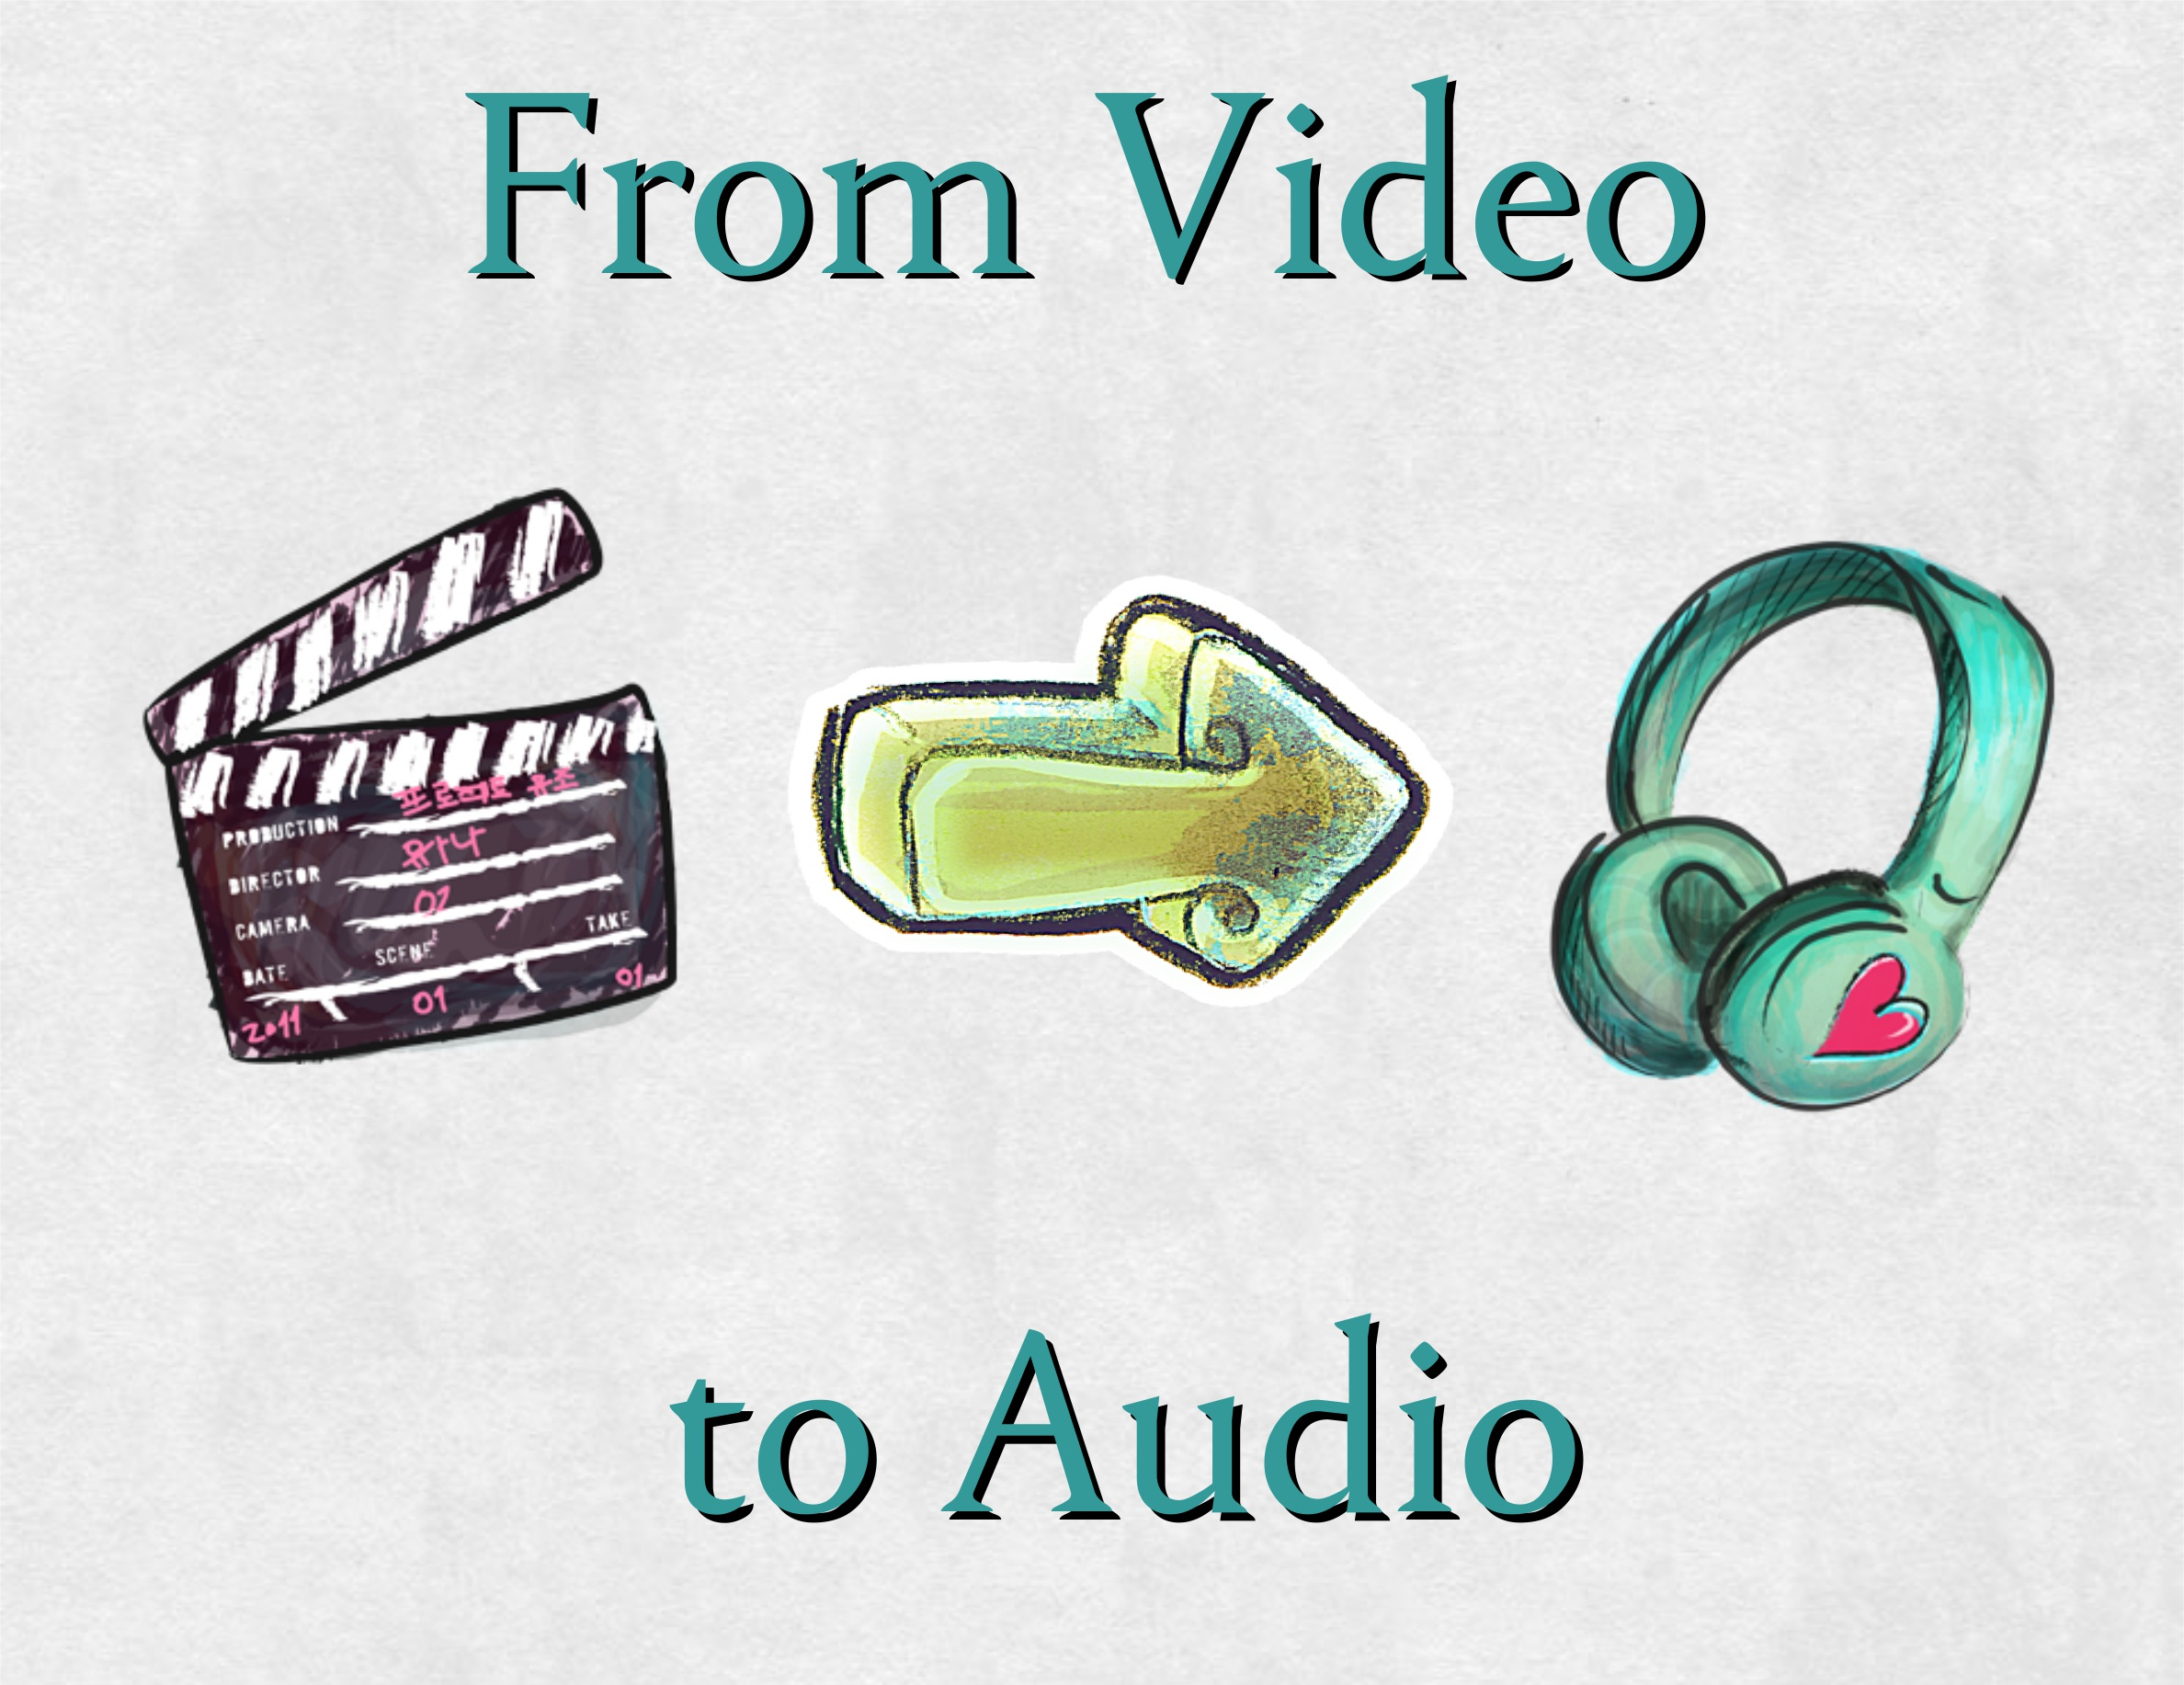 From Video to Audio